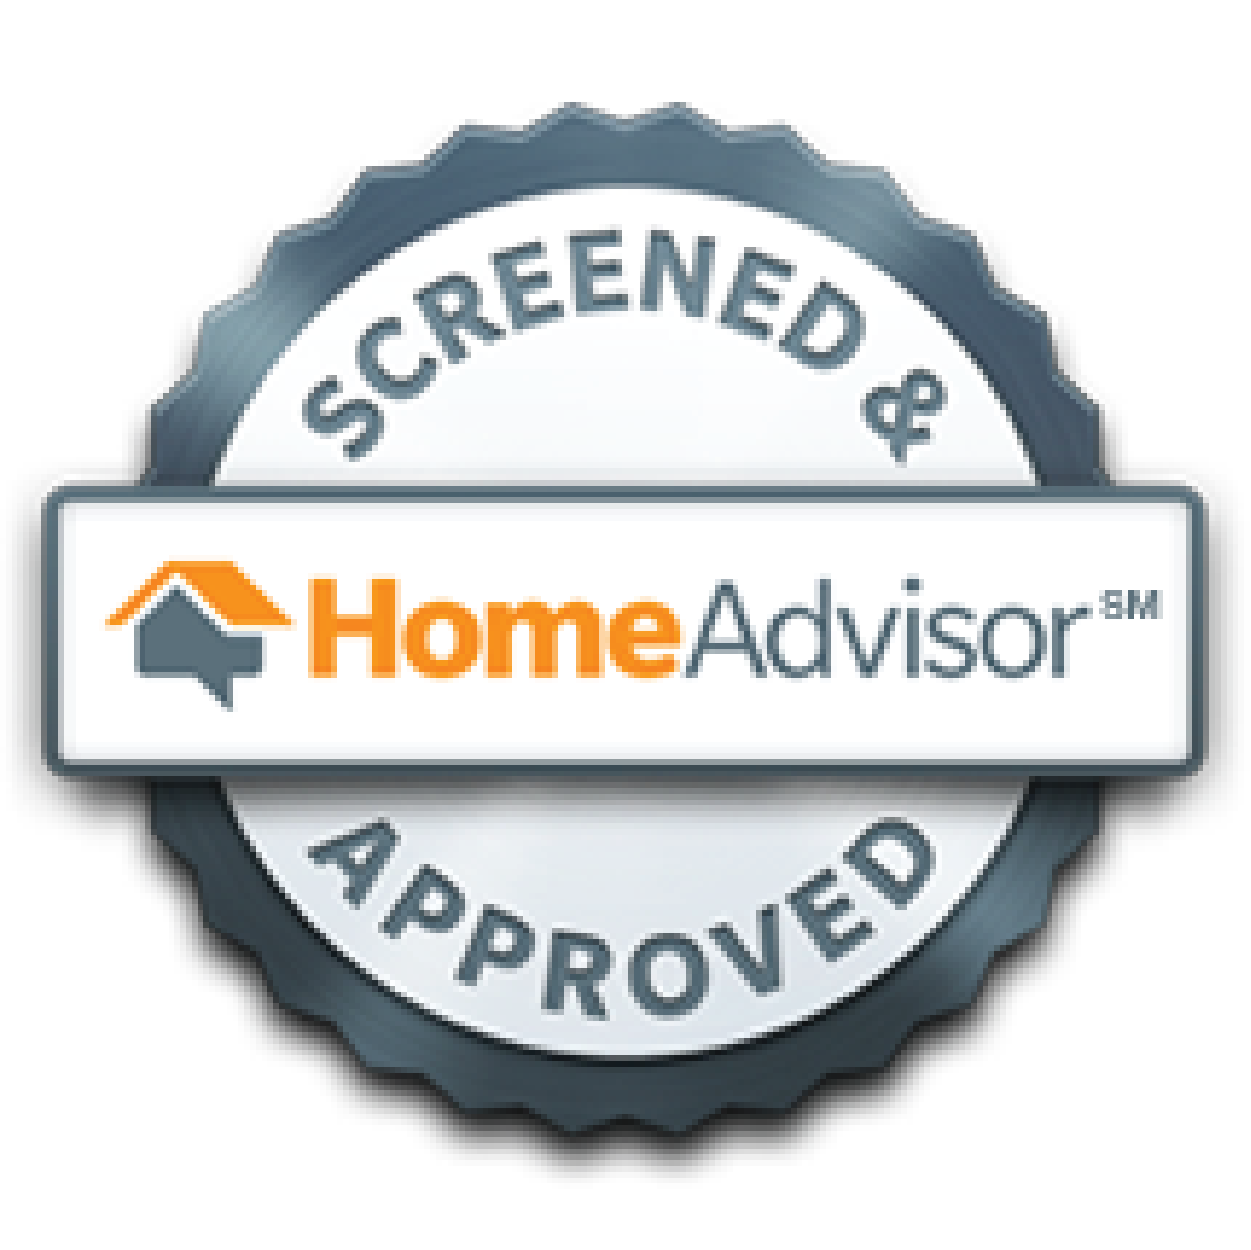 Screened and Approved by HomeAdvisor